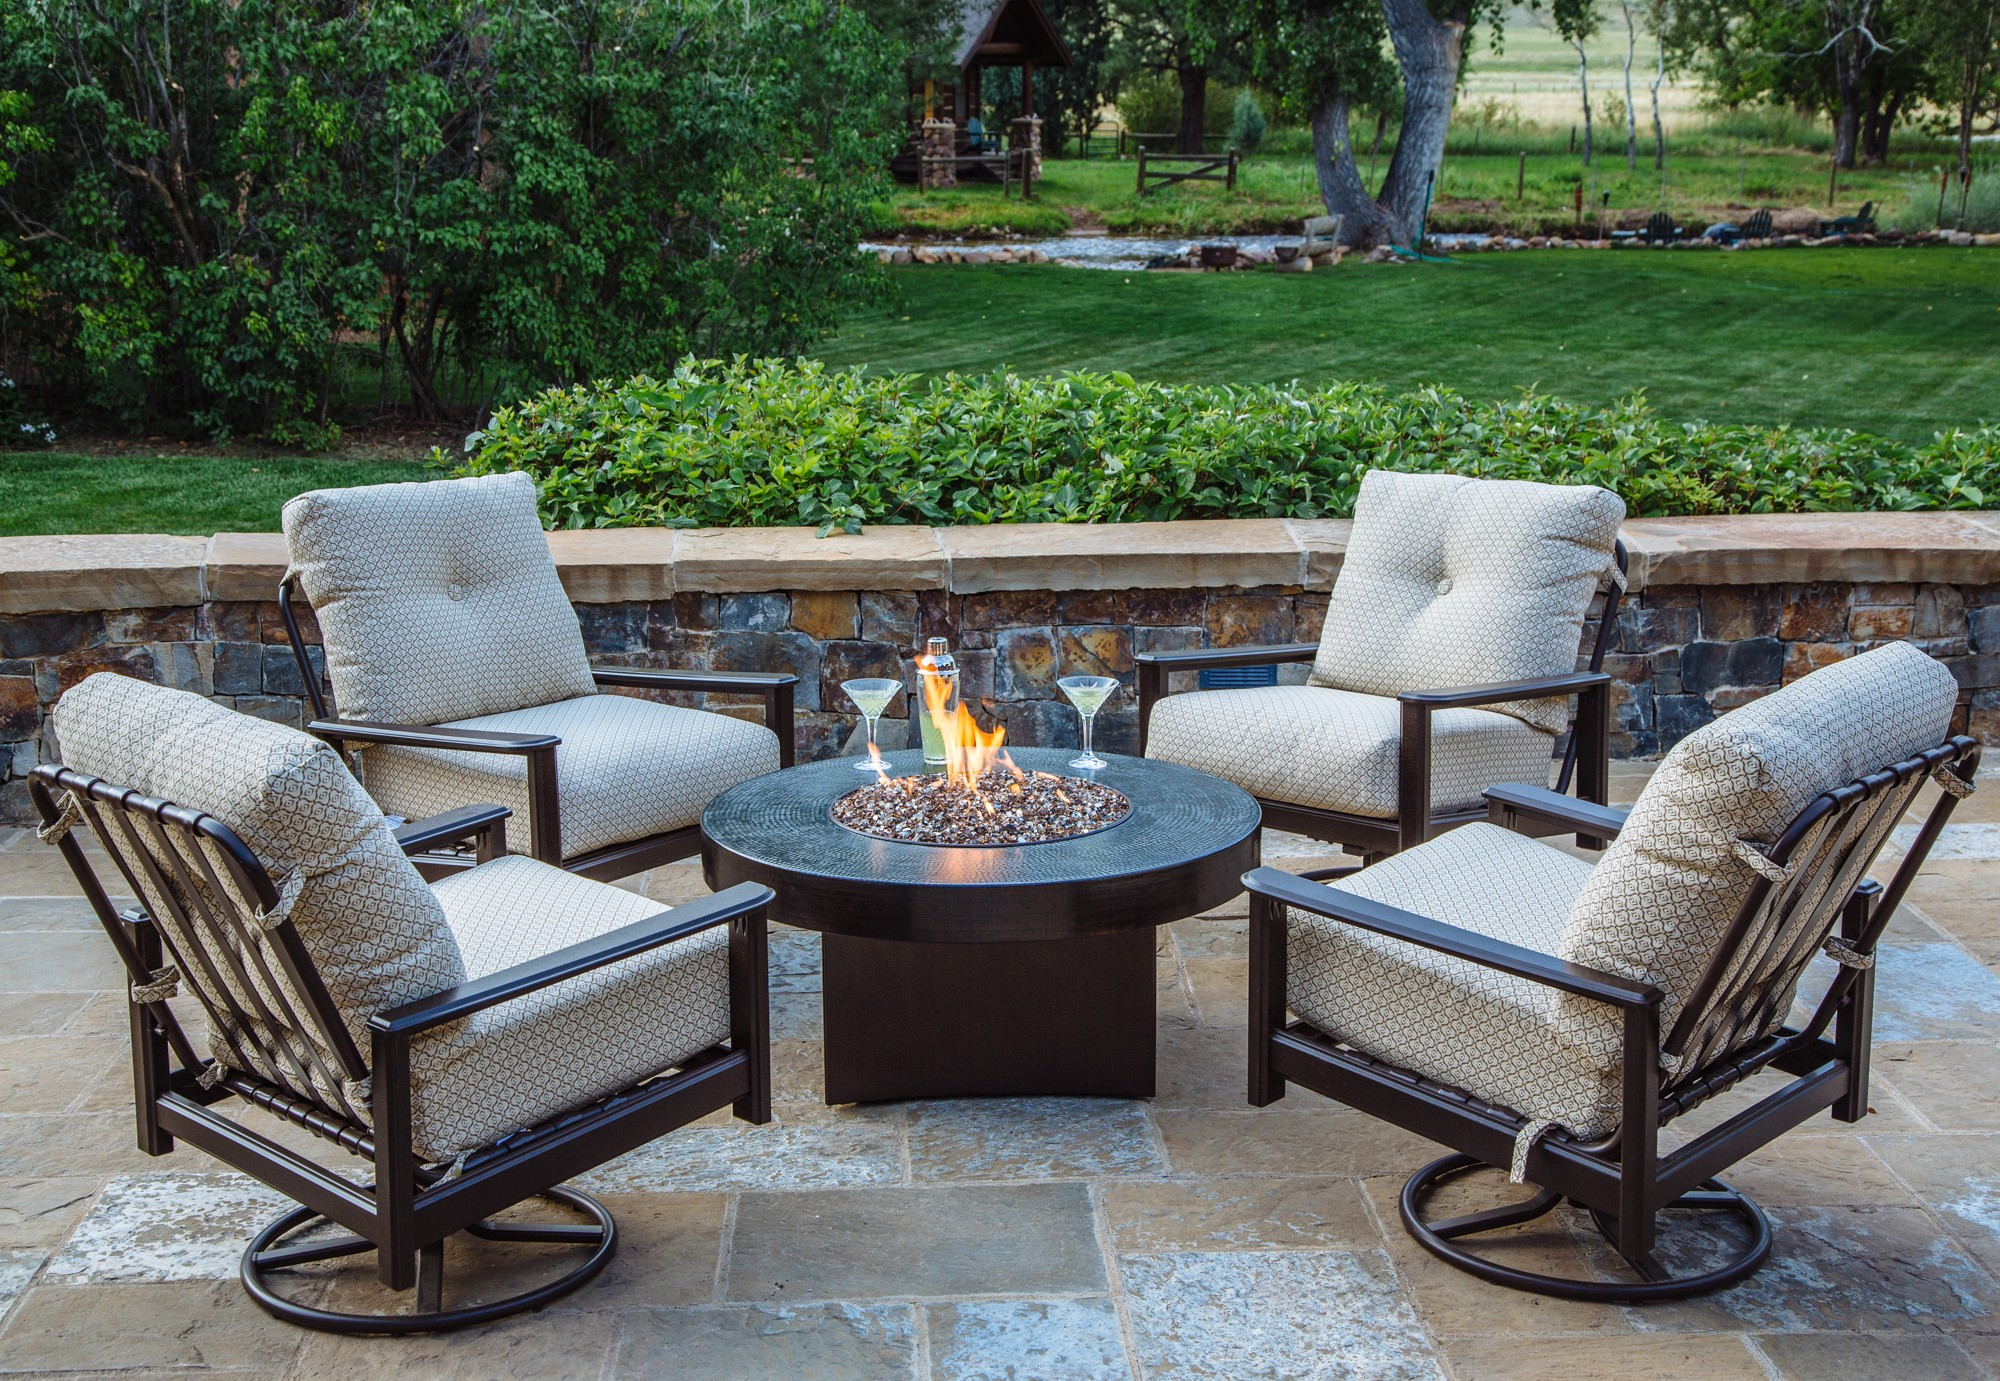 Copper Fire Pit Table Hammered Copper Fire Pit Table throughout dimensions 2000 X 1381